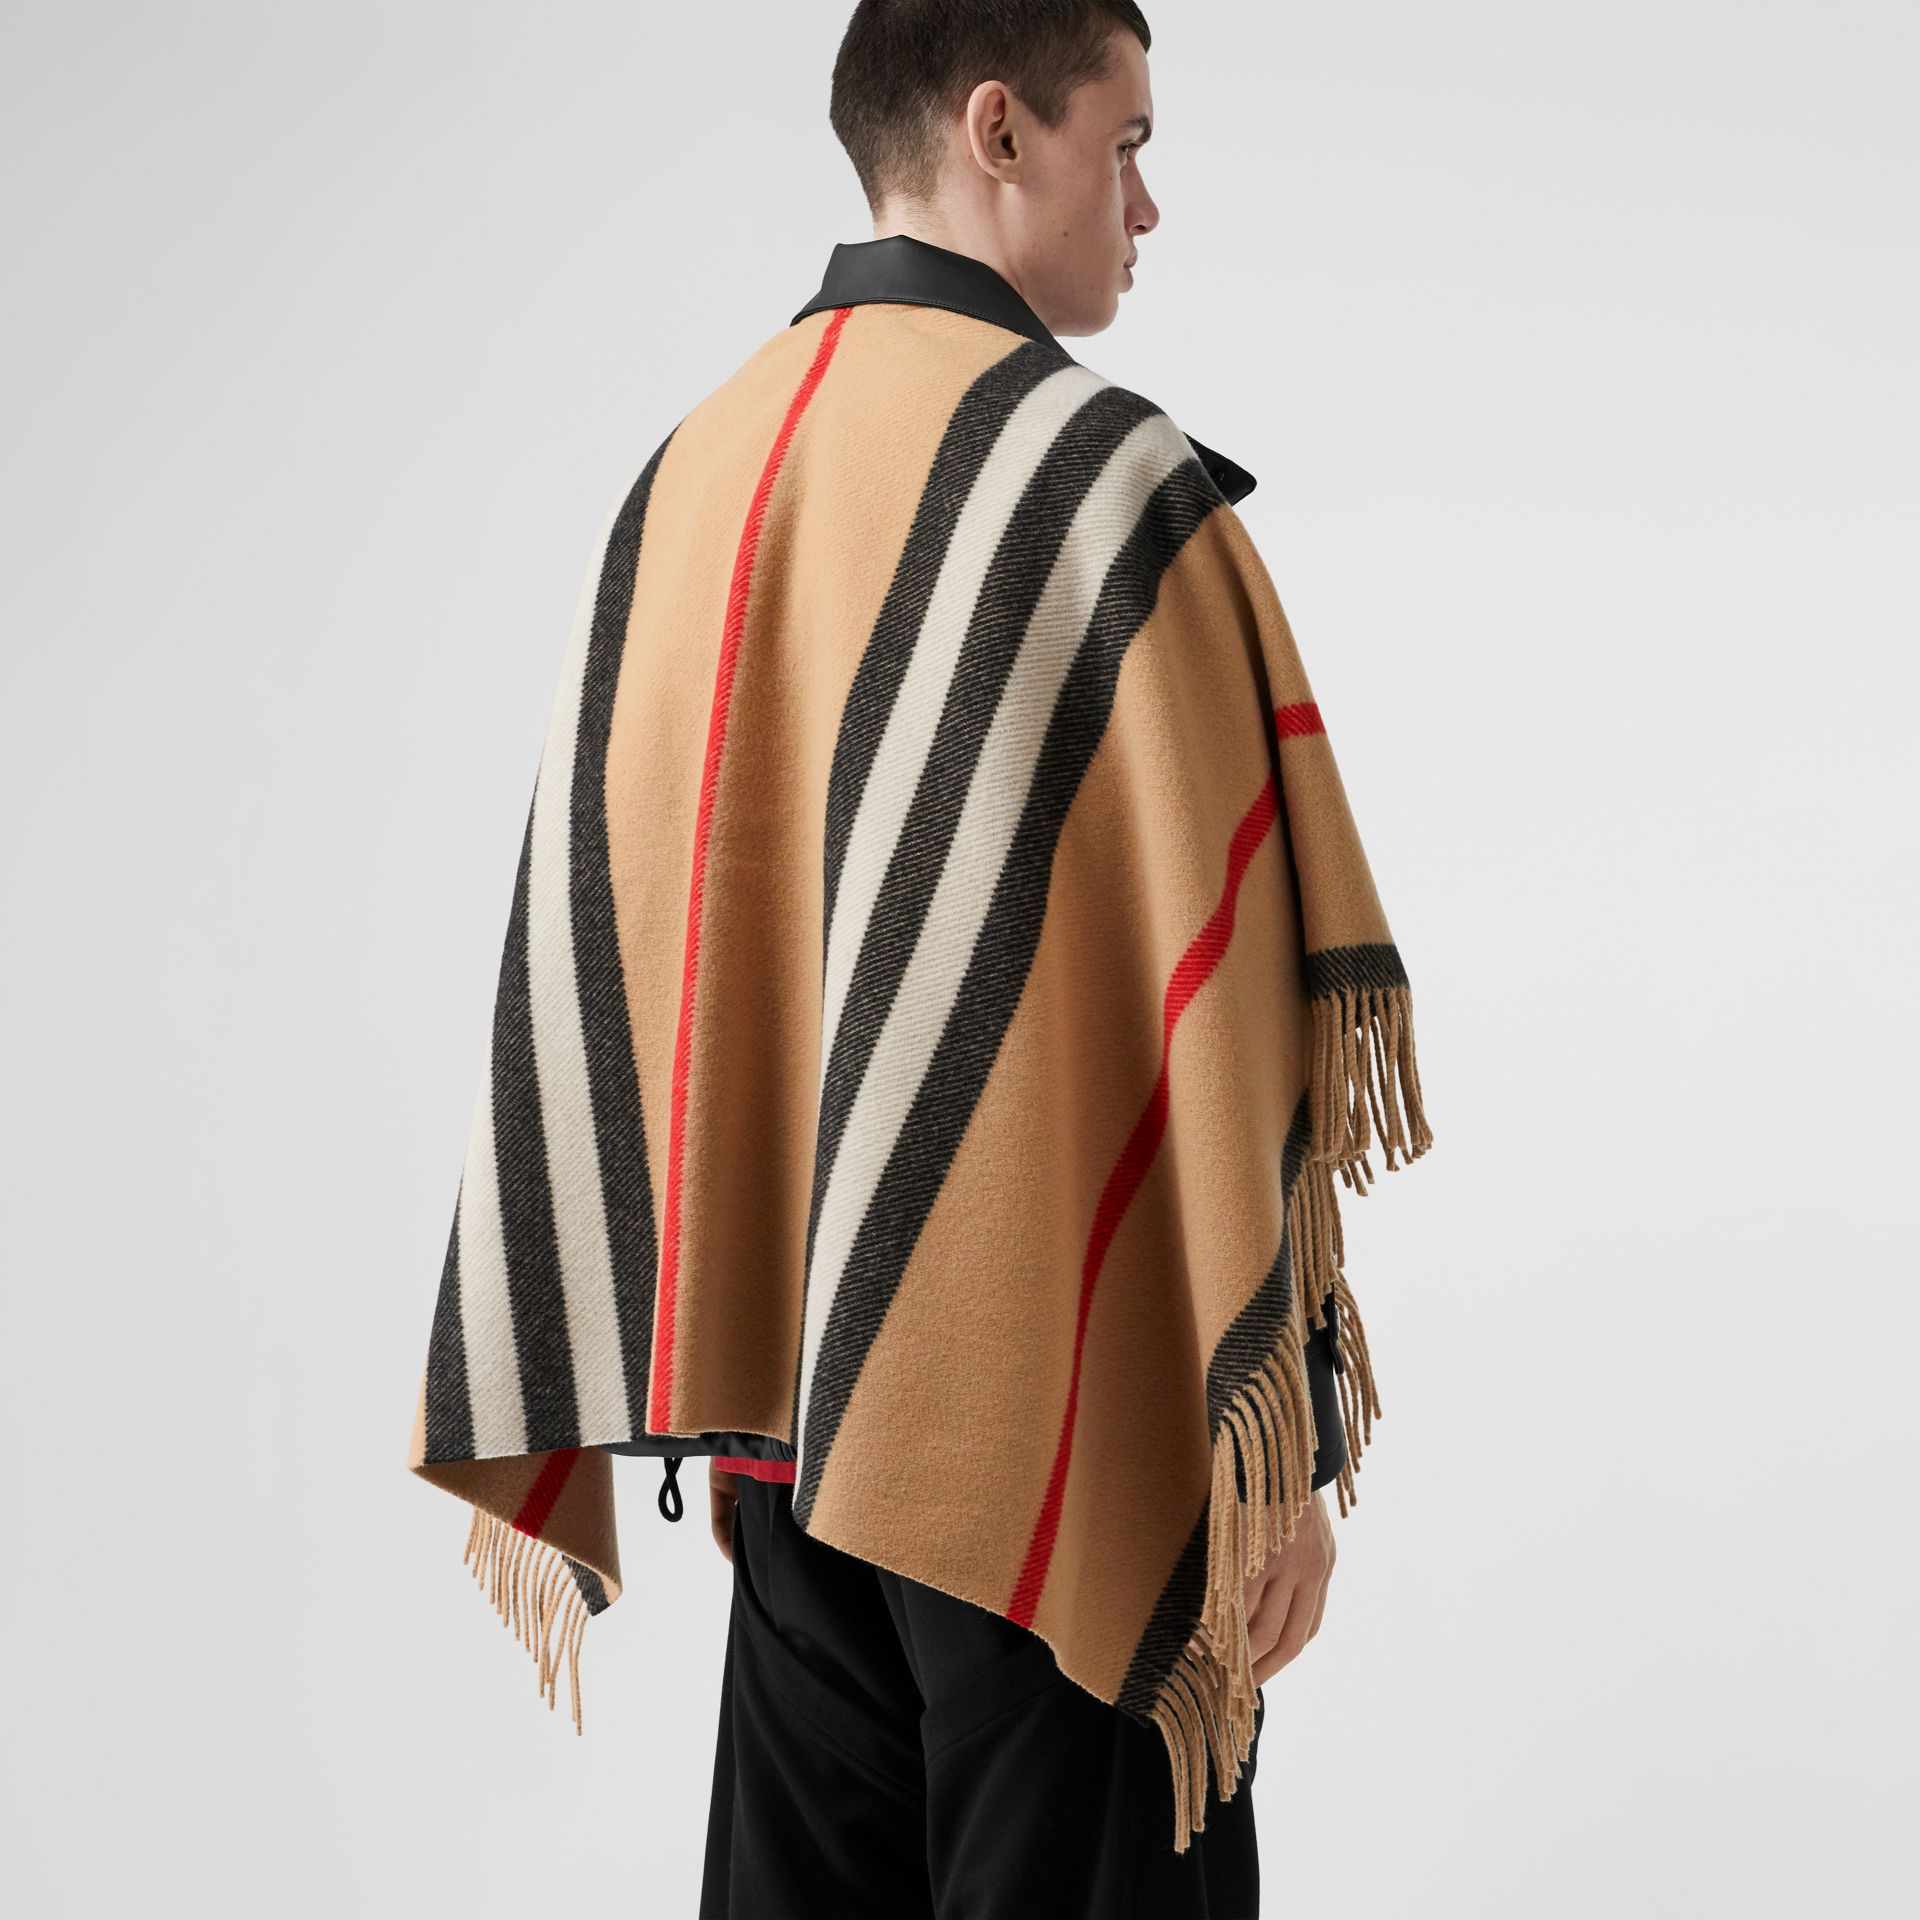 Striped Wool Cape in Camel - Women | Burberry - gallery image 8